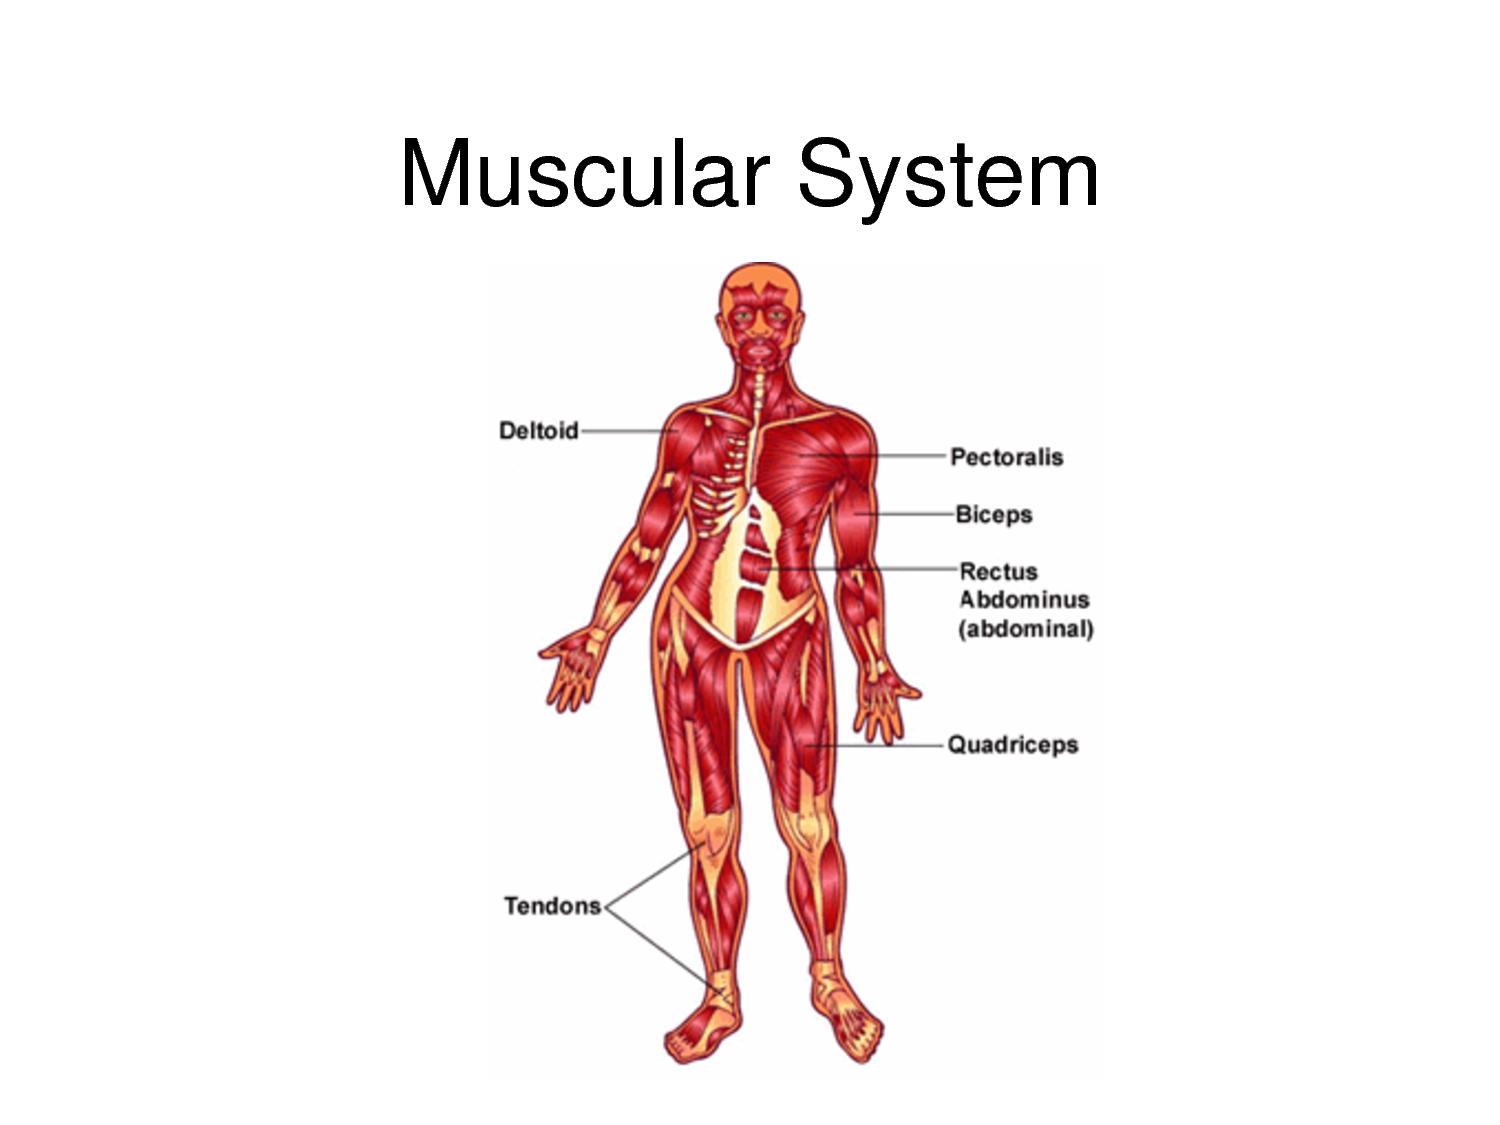 Muscular System Parts For Kids : www.galleryhip.com - The ...